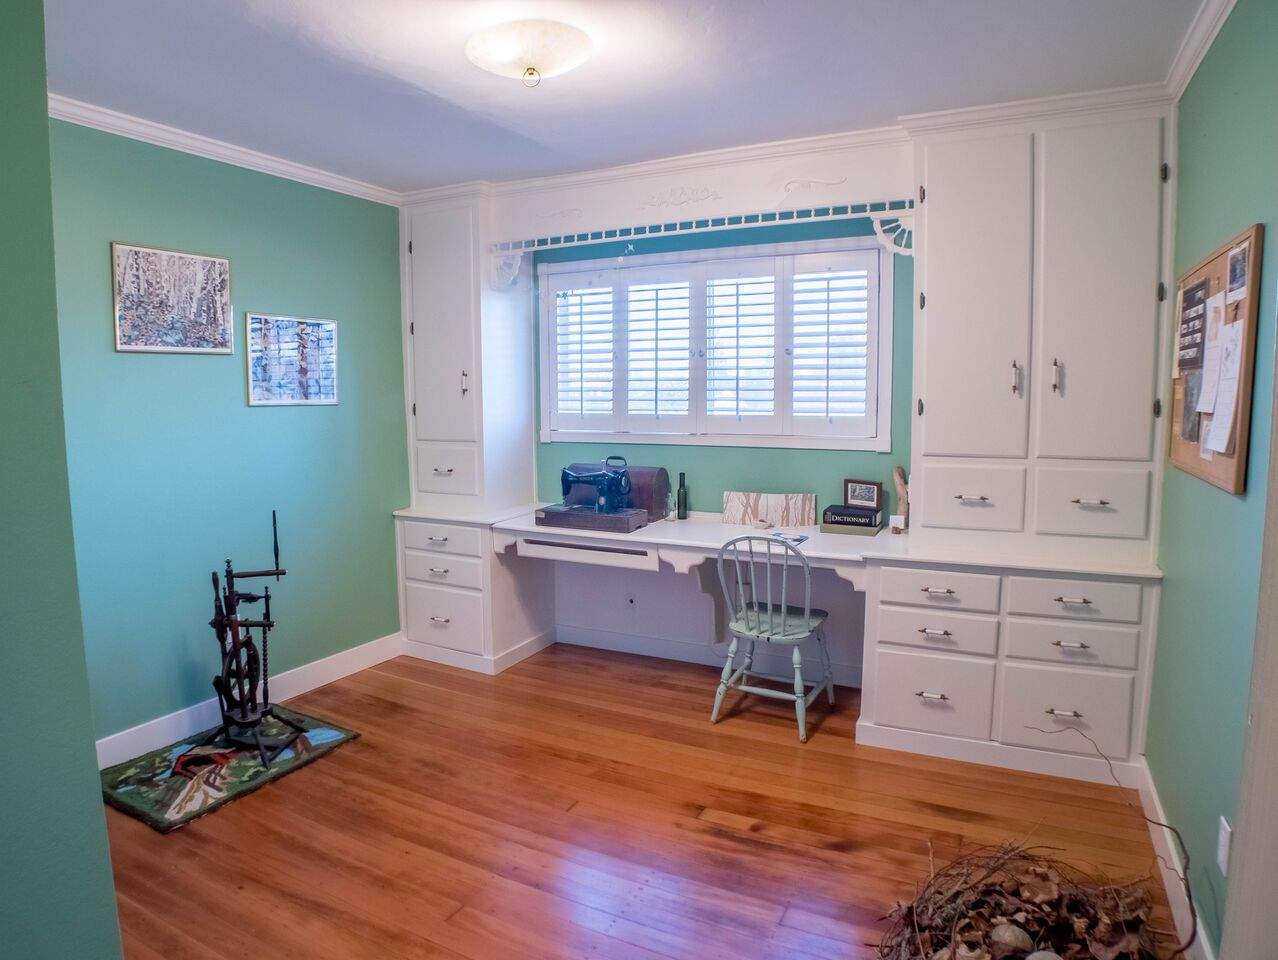 Our South Tacoma Home: Creative Room